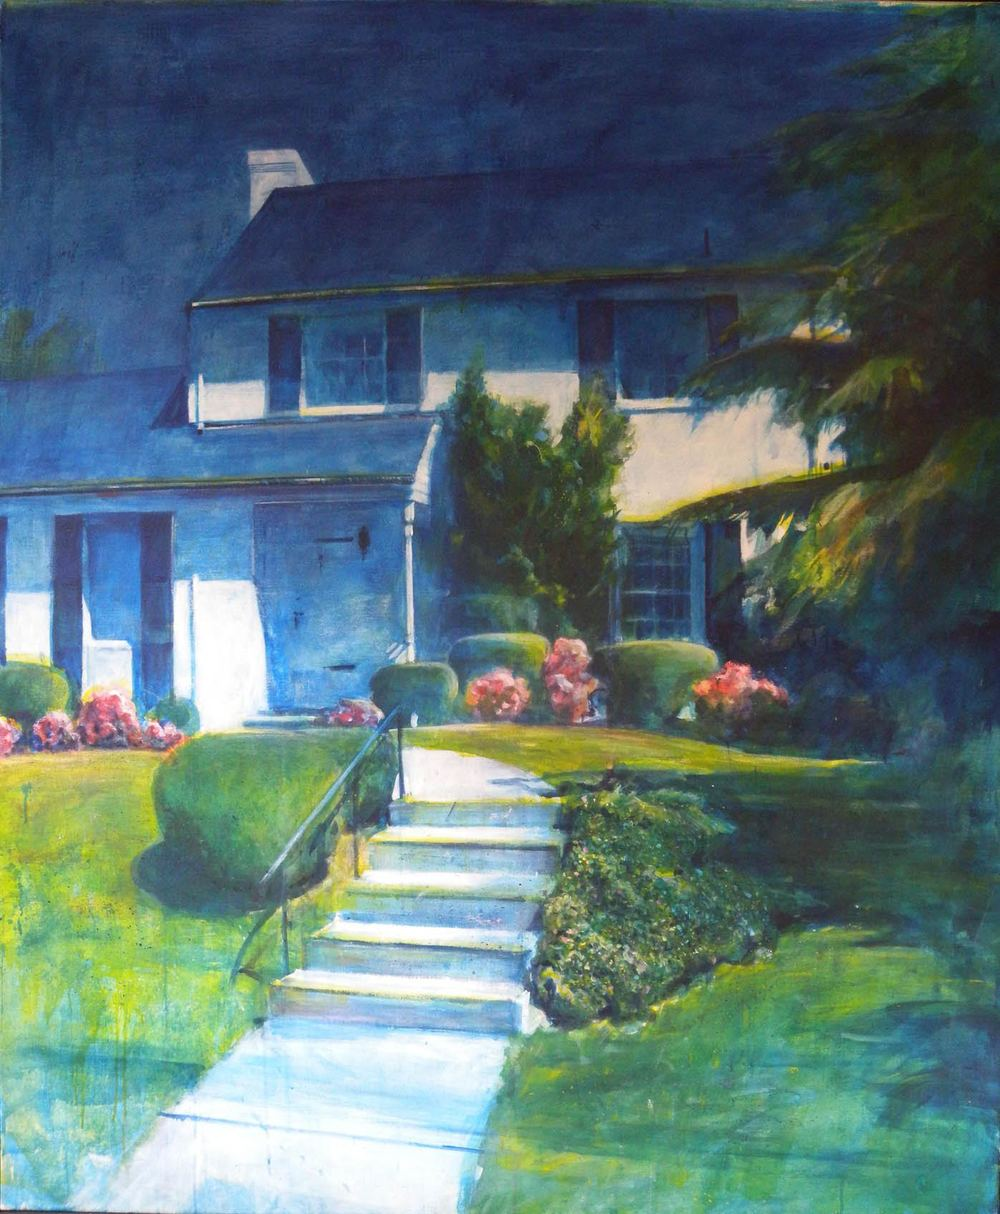 Suburban Idyll, stained canvas, 5' x 5', 1970 On Exhibit, Addison/Ripley Fine Art, DC